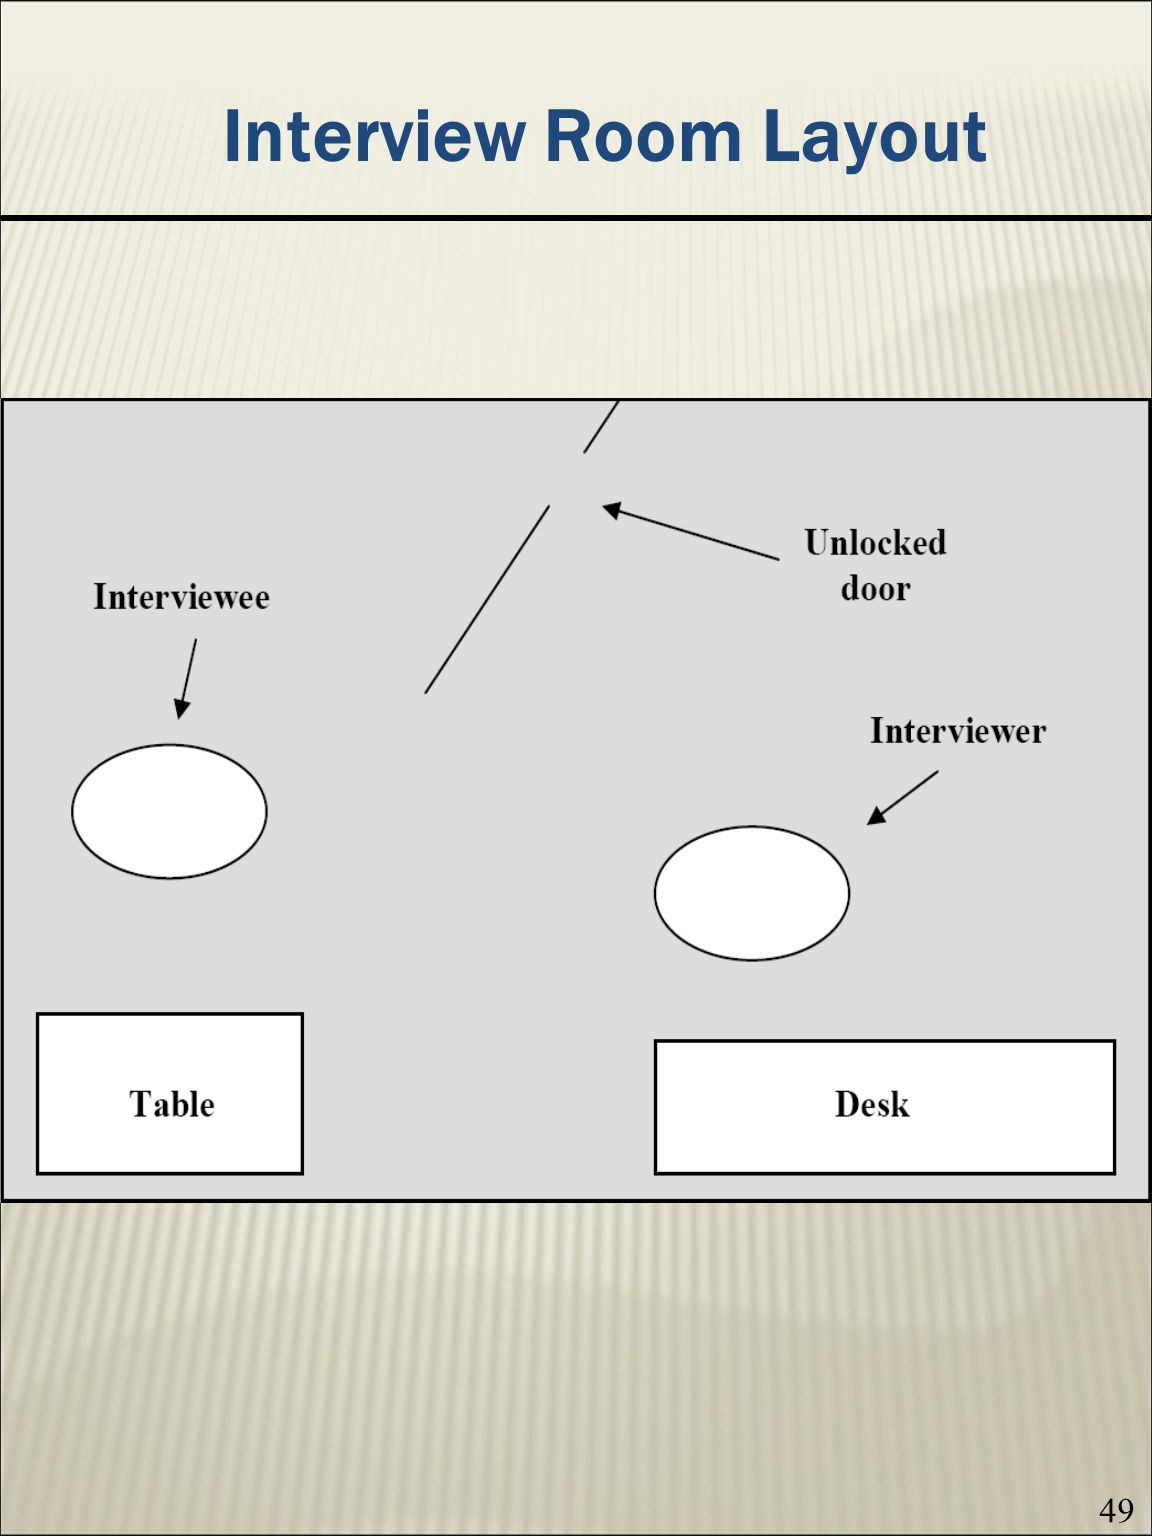 Interview Room Layout 49